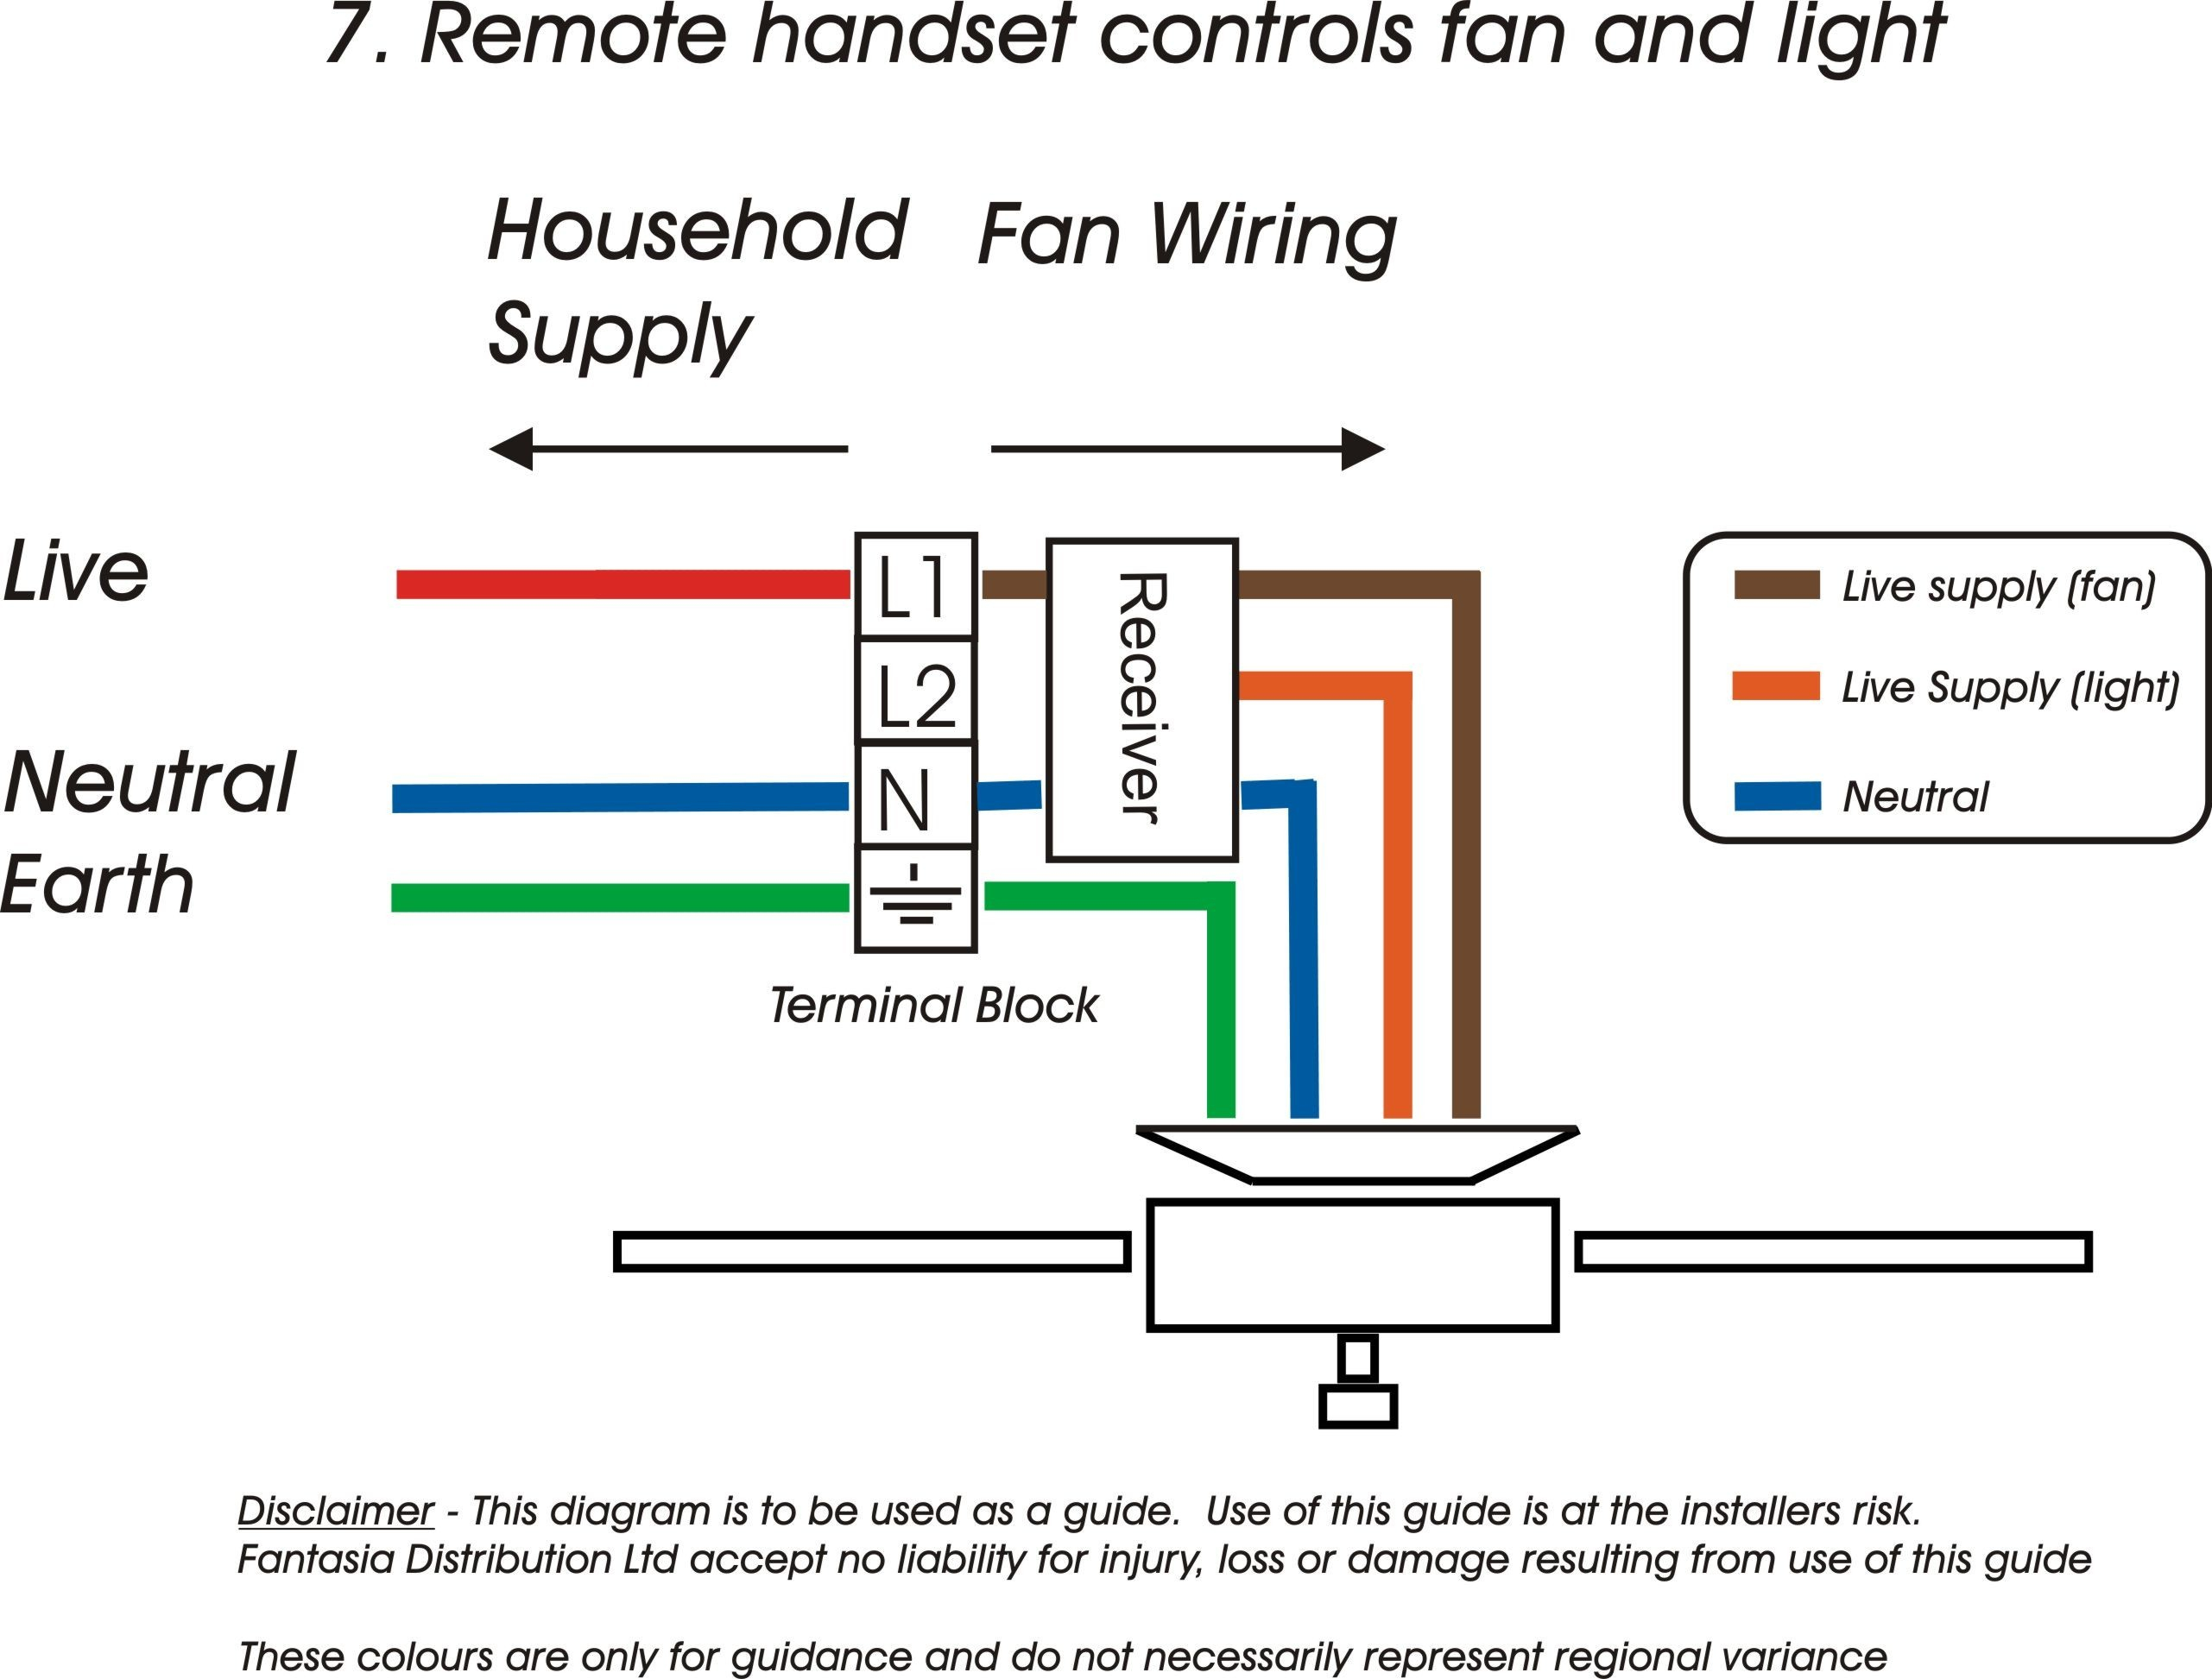 [SCHEMATICS_4FD]  Ceiling Fan Capacitor Wiring Diagram Diagram Base Website Wiring Diagram -  VENNDIAGRAMMEME.AISC-NET.IT | Capacitor Wire Diagram |  | Diagram Base Website Full Edition - aisc